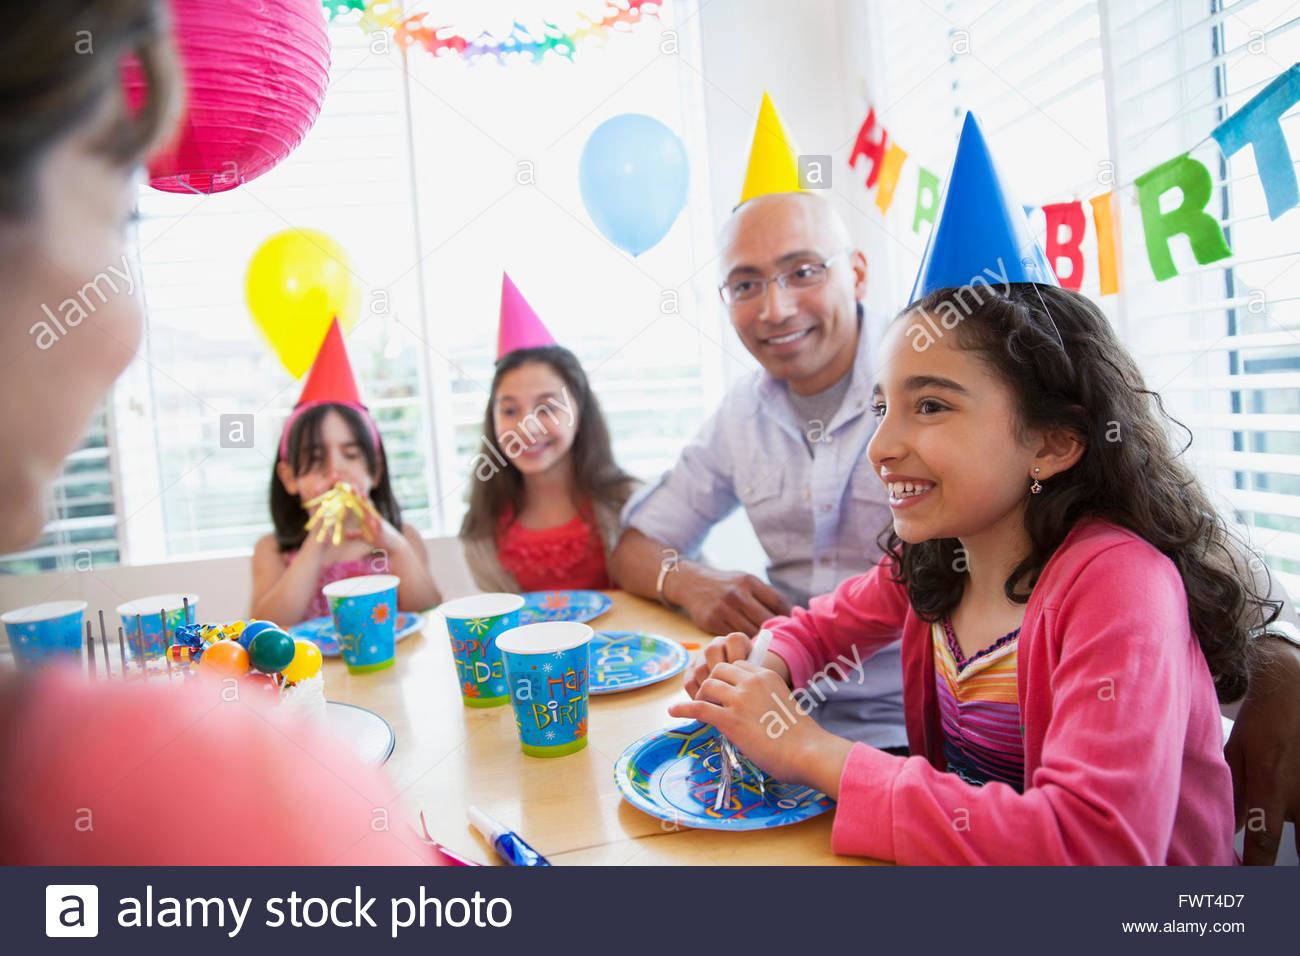 Birthday girl sitting at table with family - Stock Image